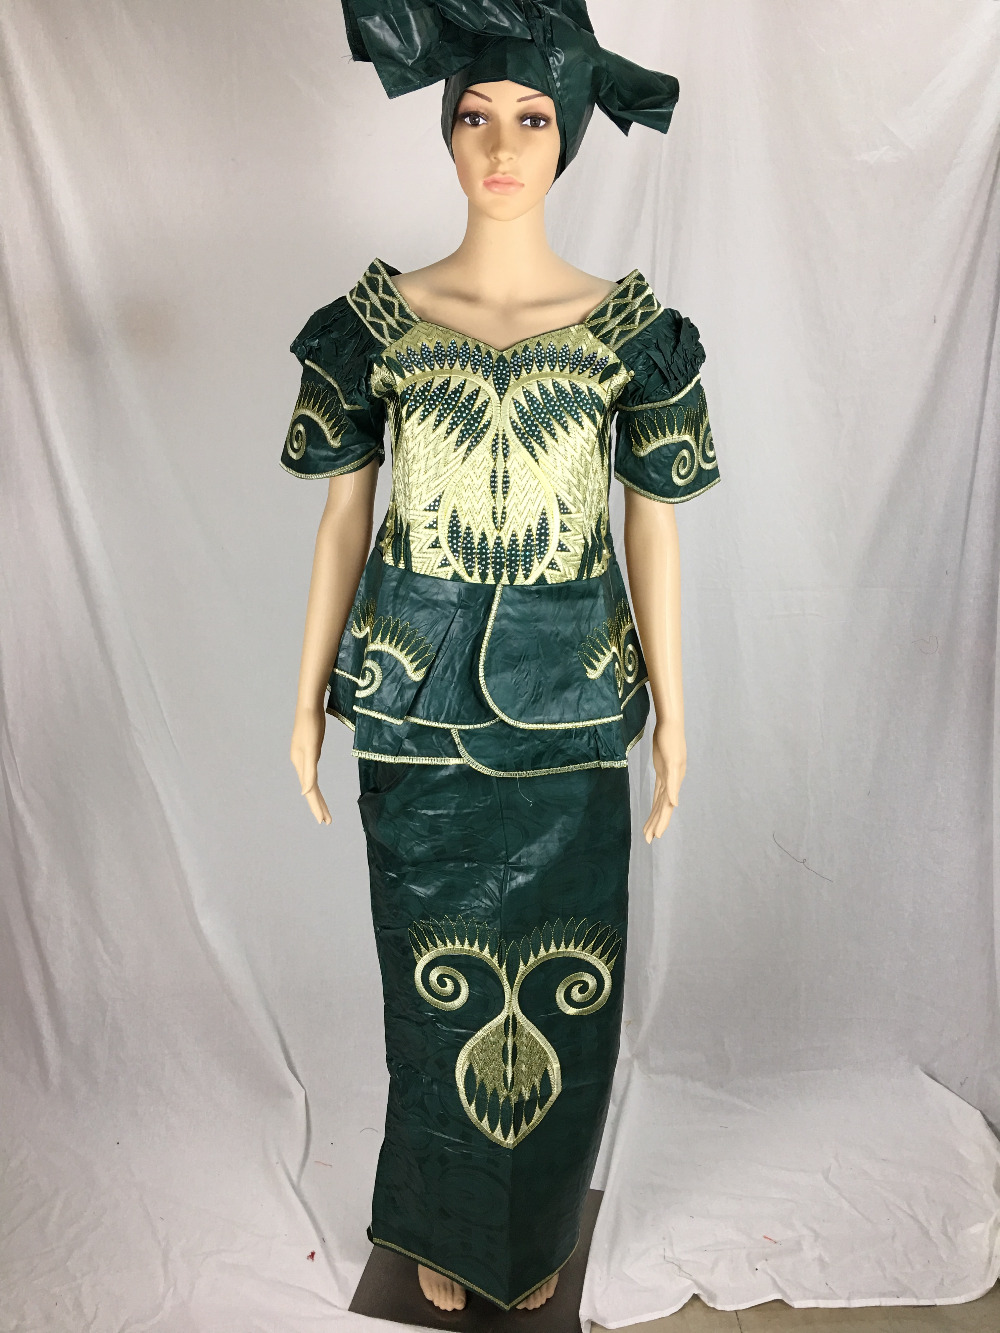 The Lady Dress Dress Fashion woman 100 African dashiki Bazin riche area two parts of traditional